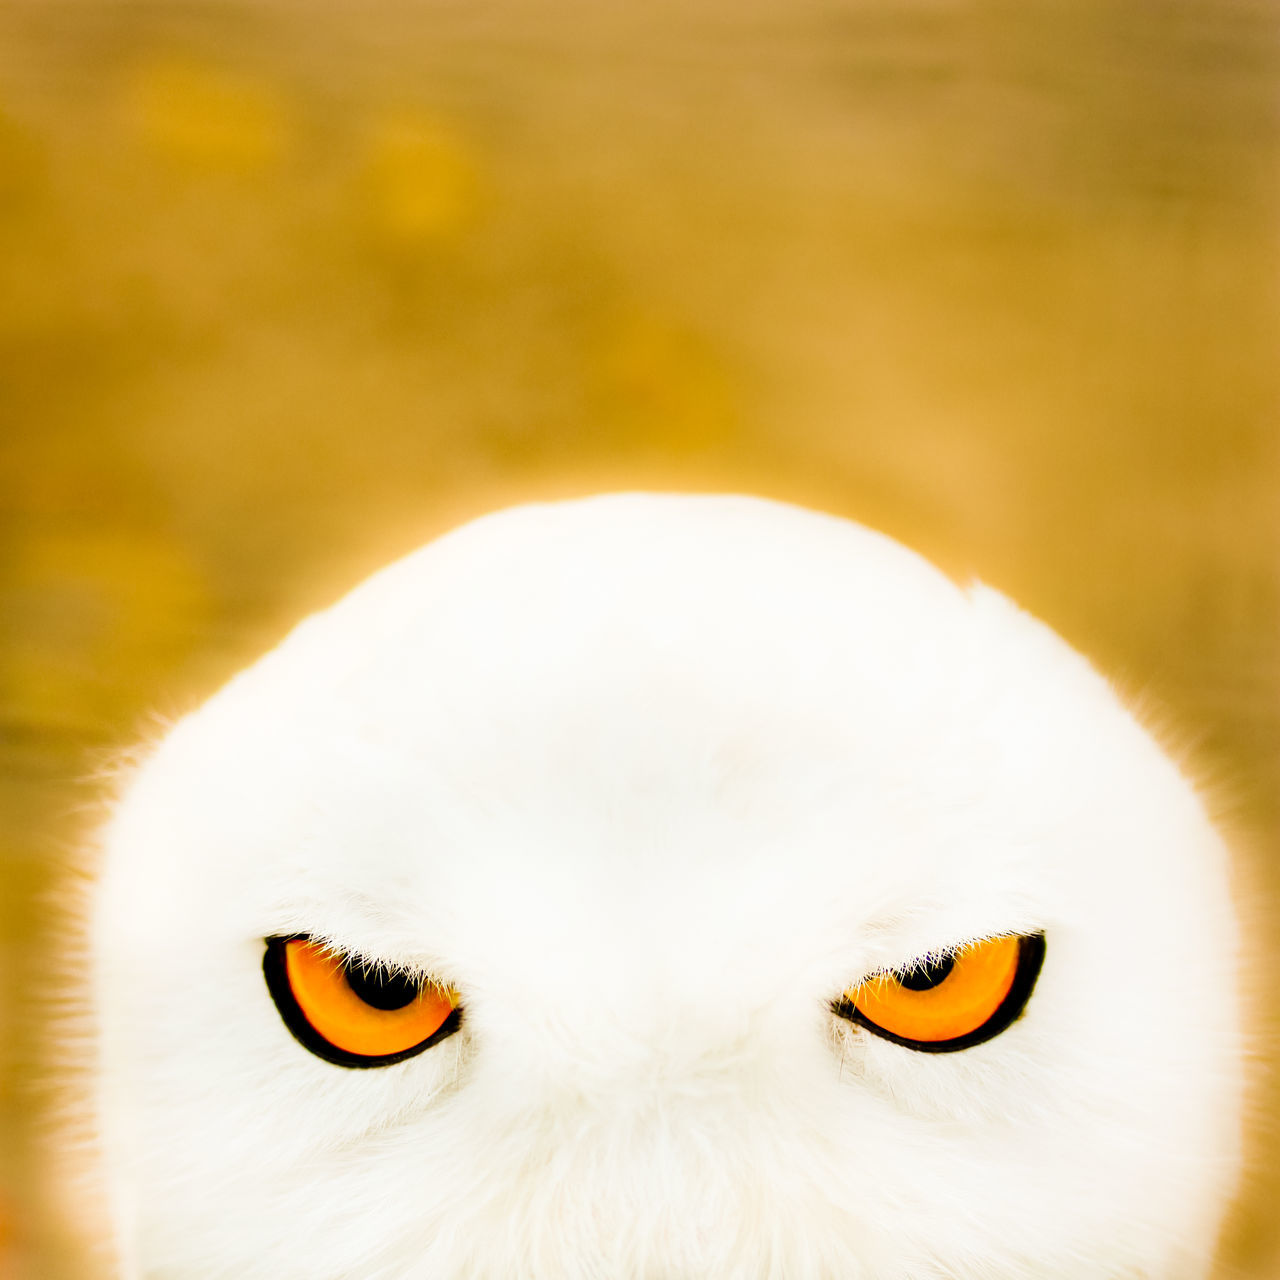 Animal Themes Animals In The Wild Bird Birds Eyes Blurred Background Close-up Copy Space Day Eyes Looking Looking At Camera No People One Animal Orange Eyes Outdoors Owl Owl Eyes Portrait Sharp Eyes Snow Owl Strict Look White White Feathers Yellow Yellow Eyes